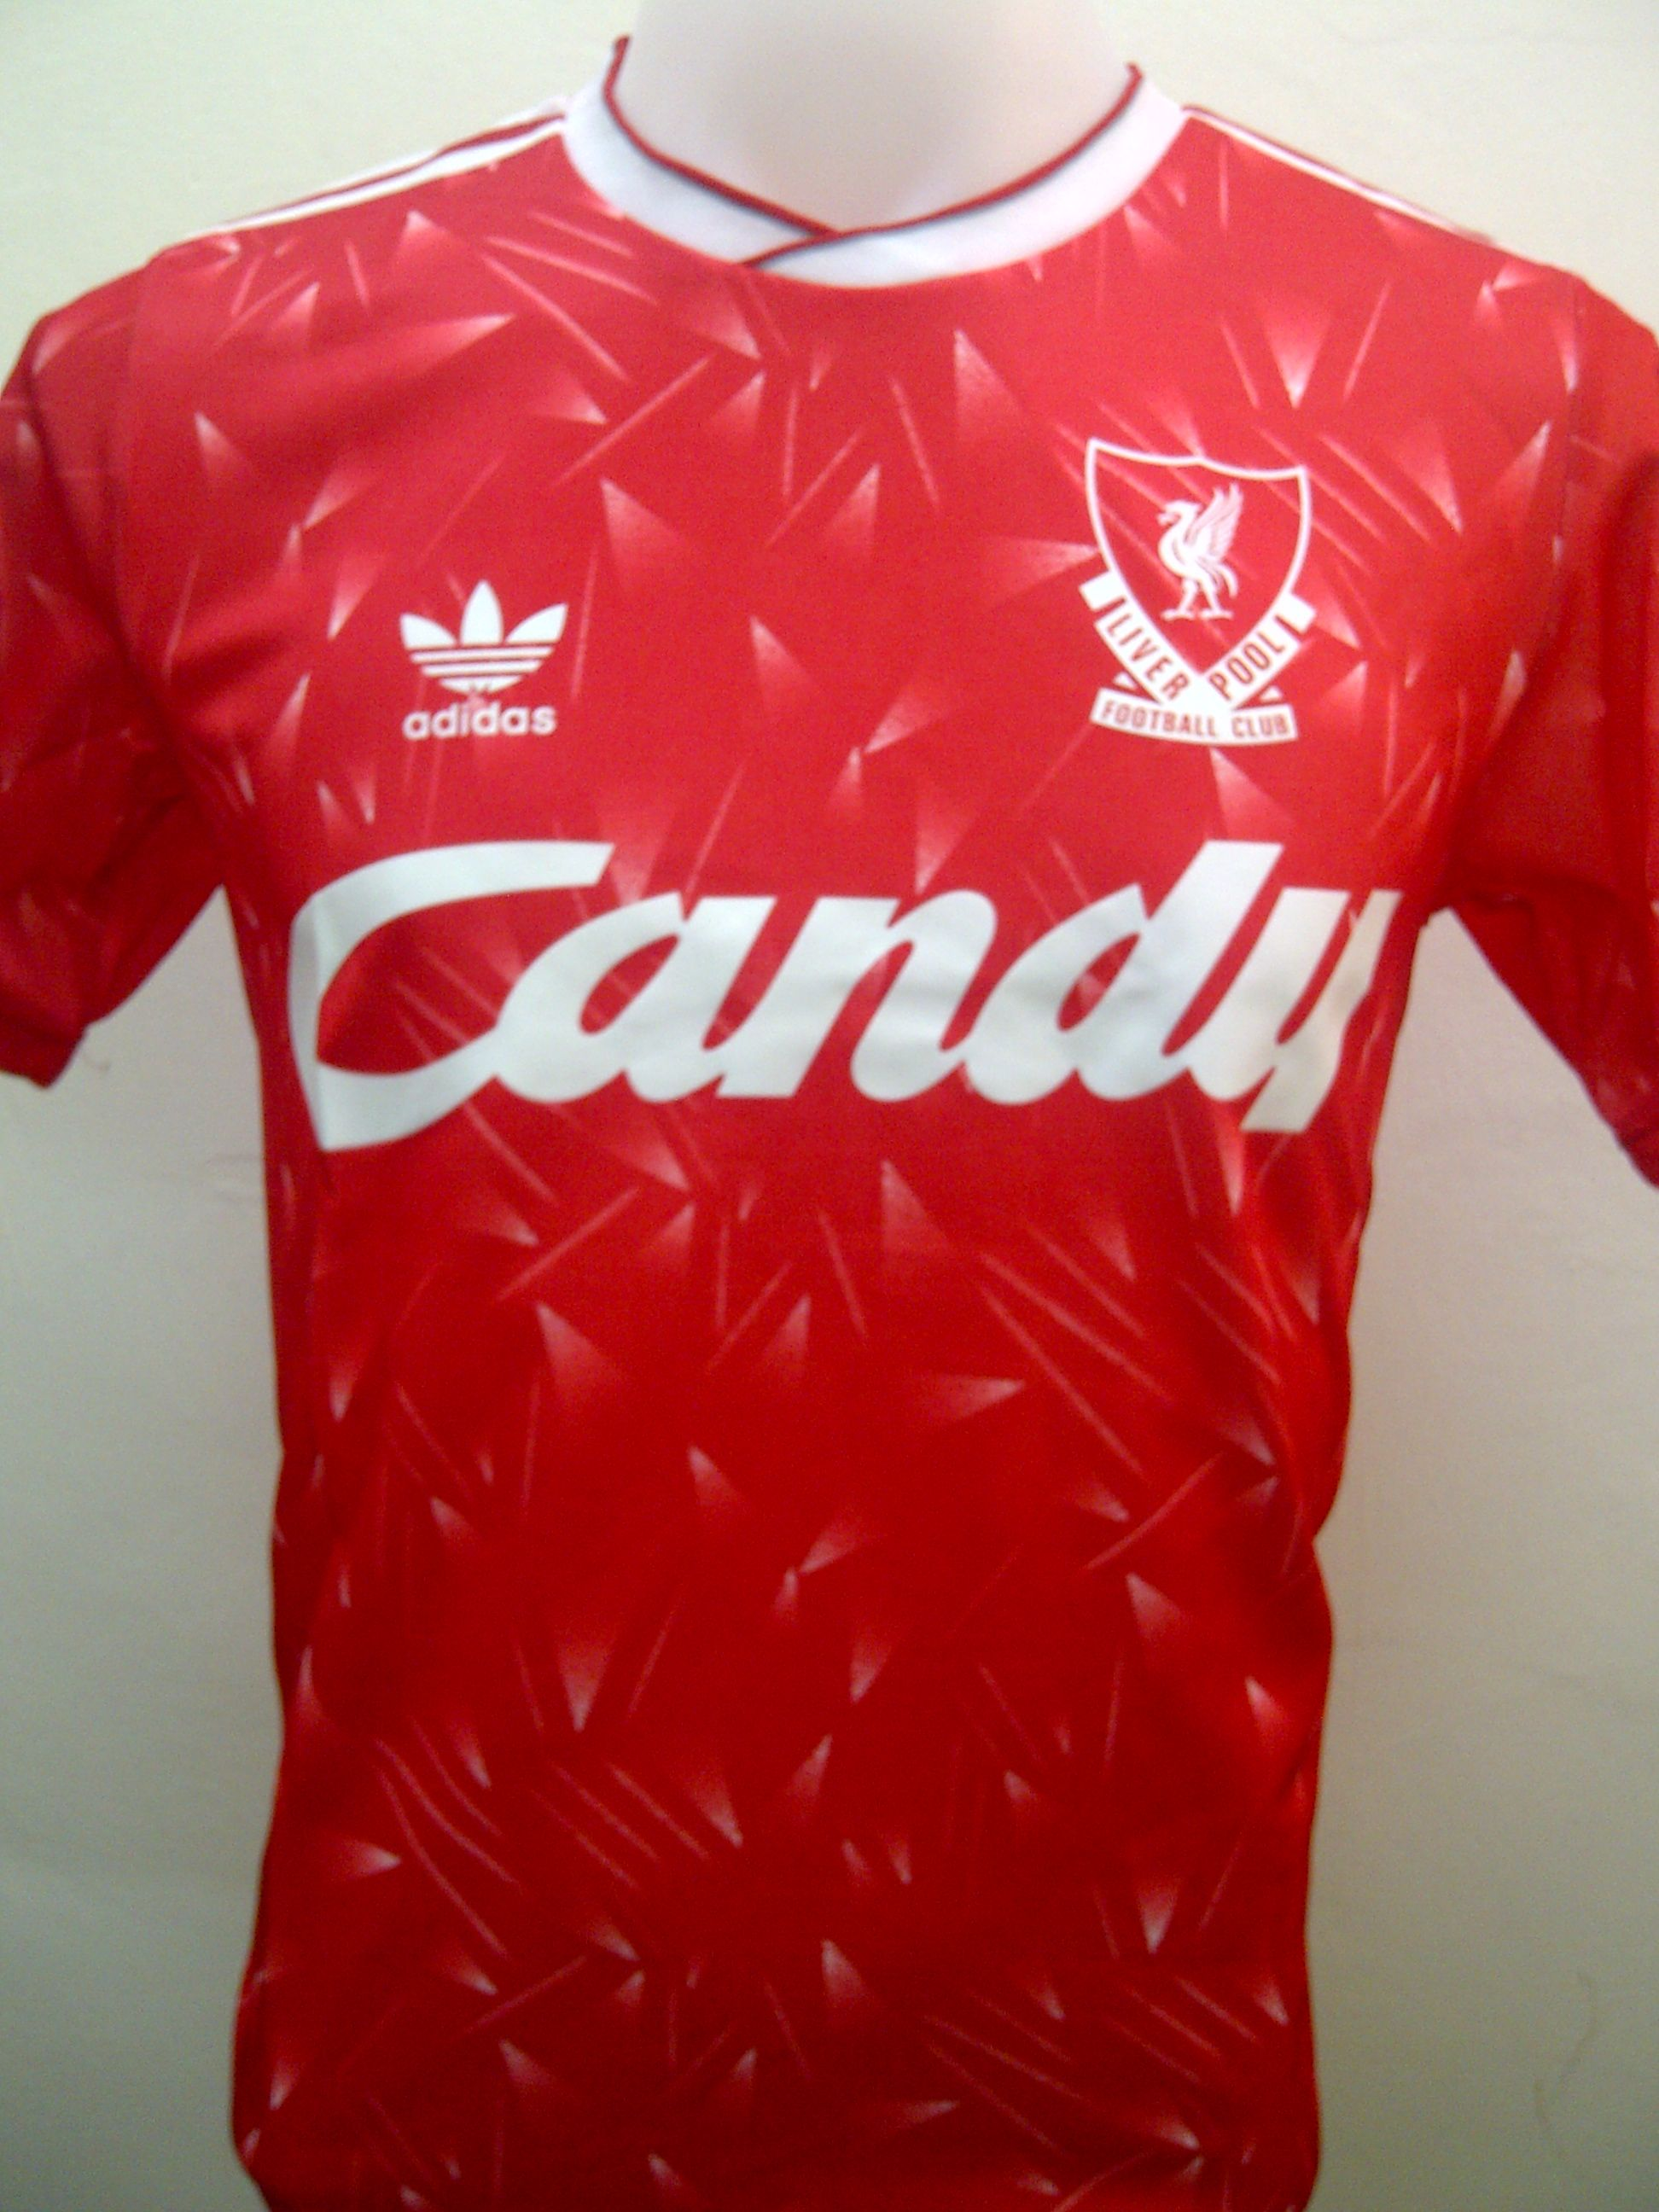 Liverpool 1990 Home Vintage Jersey Conditon New Replica Fabric 100 Polyester Grade Aaa Vintage Jerseys Football Shirts Football Uniforms